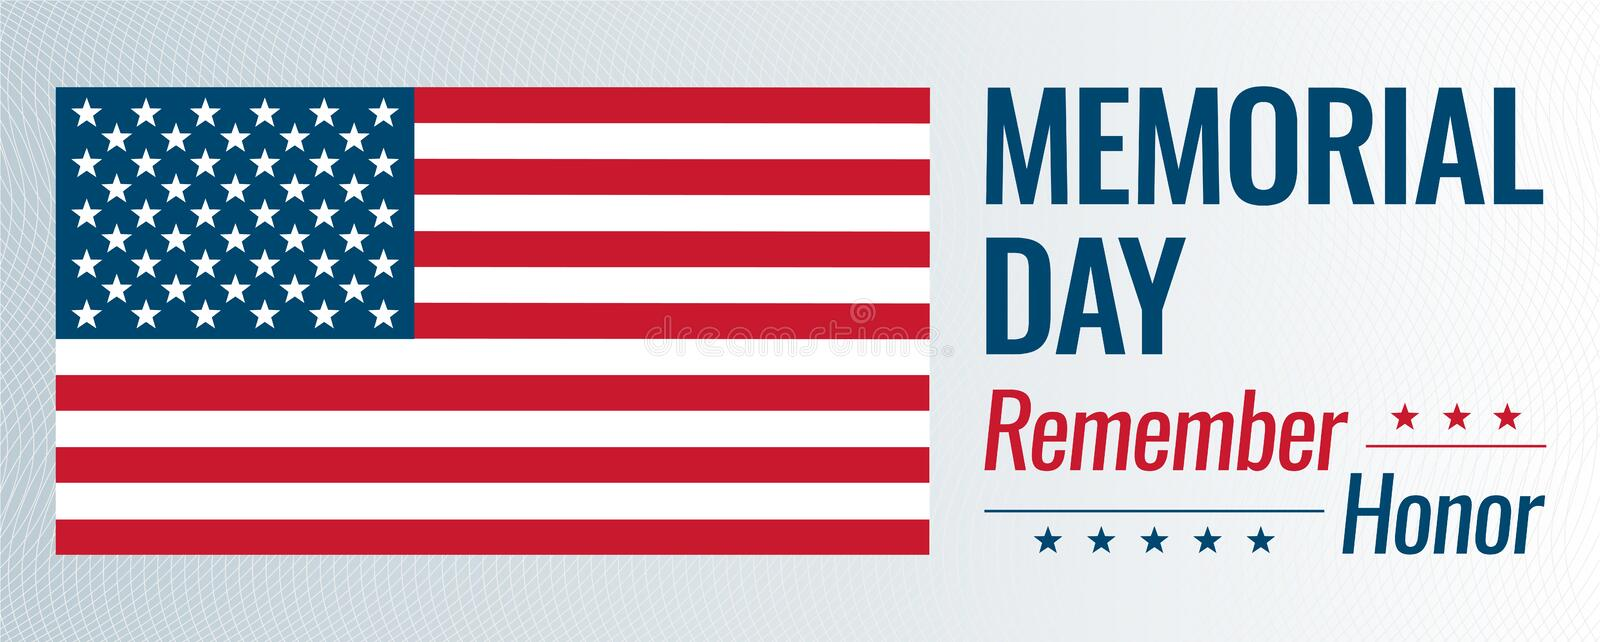 Memorial Day vektorillustration Minns och hedra text med USA flaggan royaltyfri illustrationer